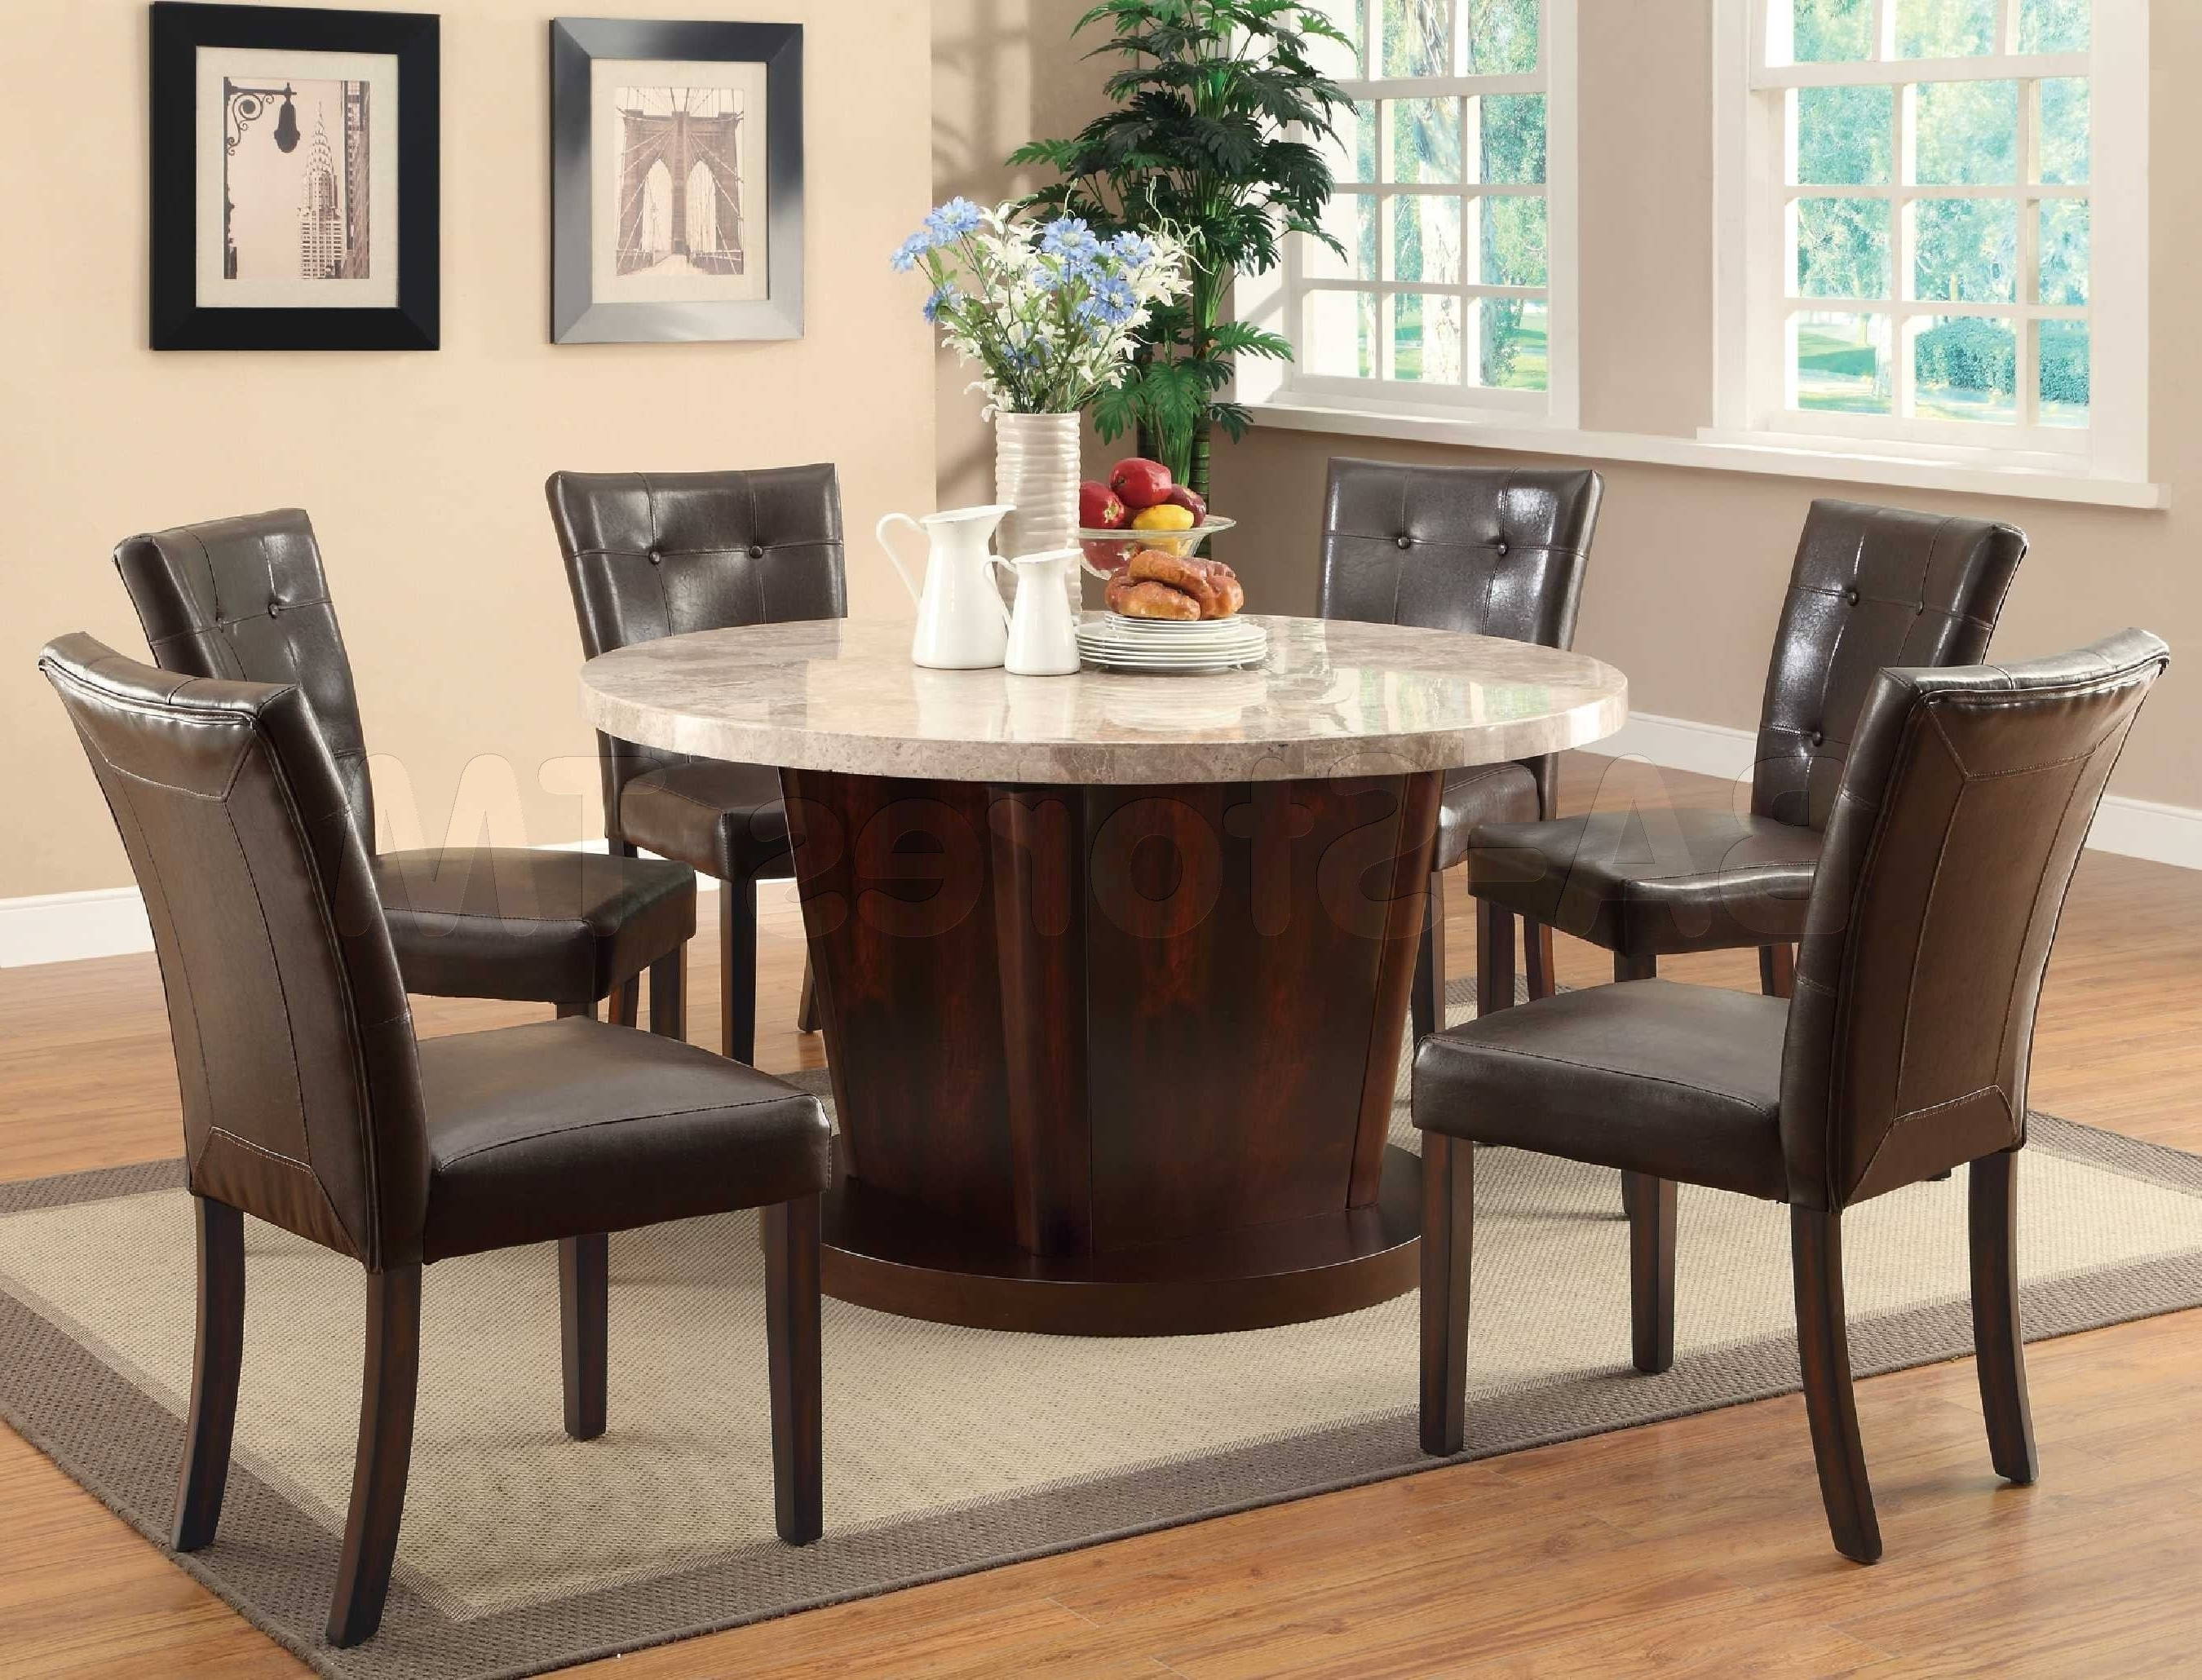 2017 Norwood 9 Piece Rectangular Extension Dining Sets With Uph Side Chairs regarding Low-Cost Dining Room Tables. Dishy Room Tables Cheap Prices Dining